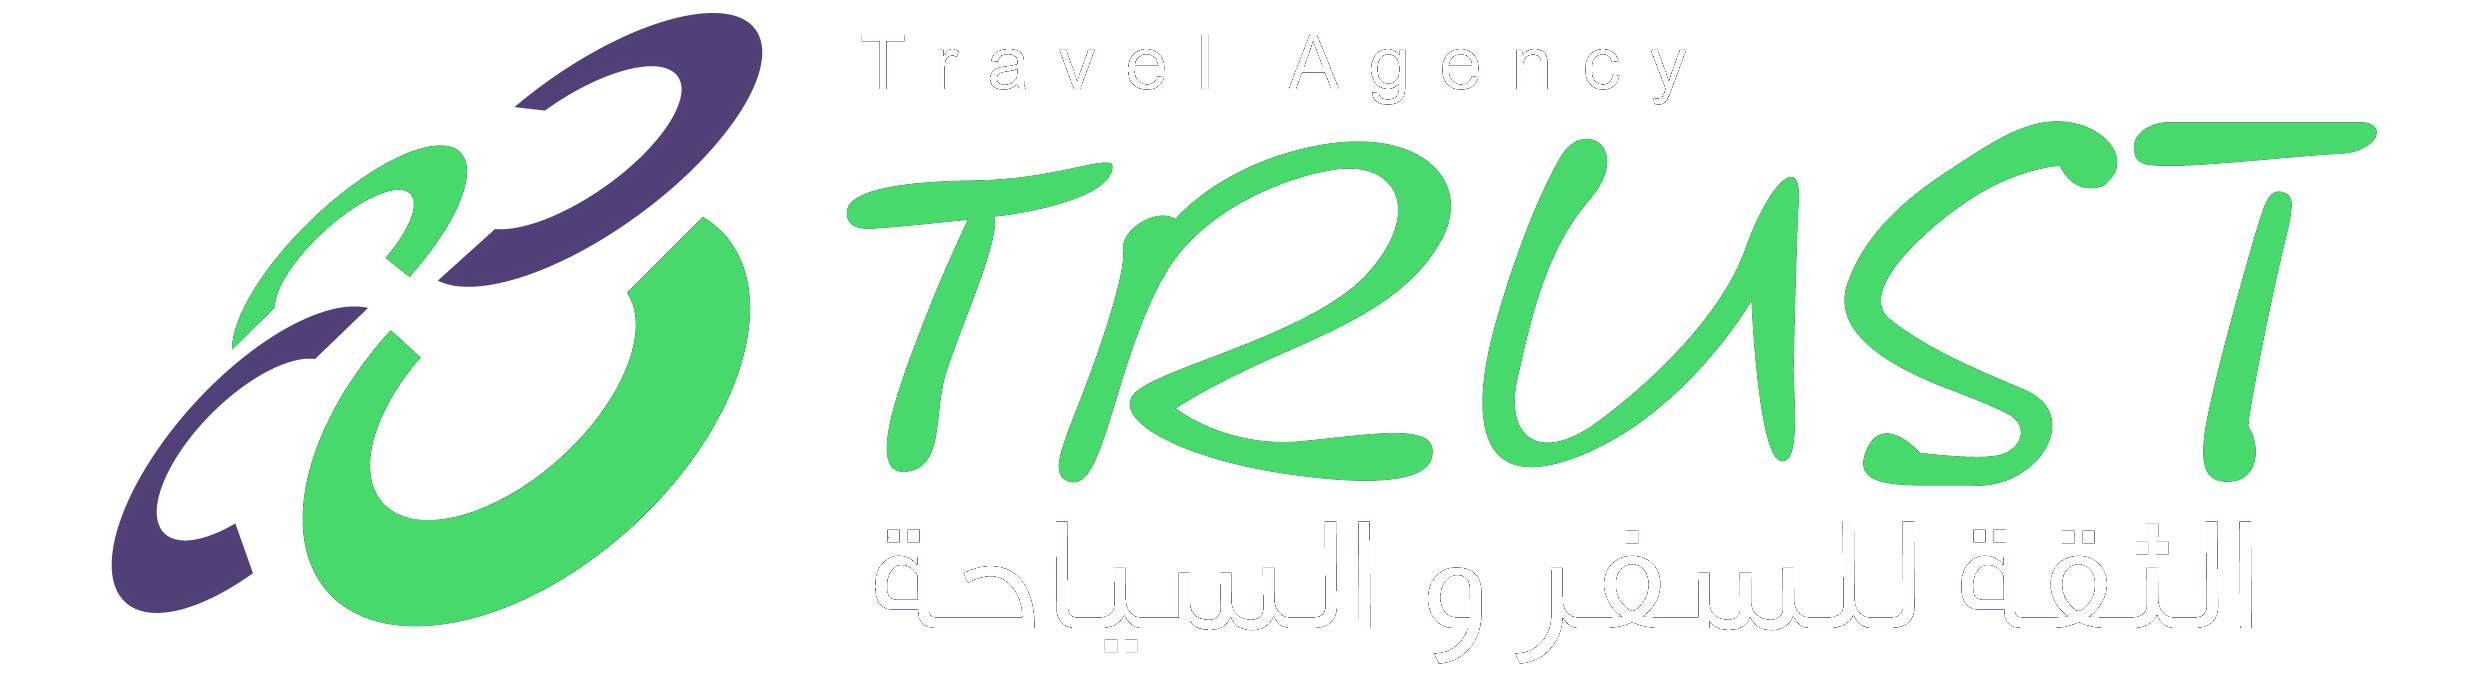 Trust Travel and Tourism Agency